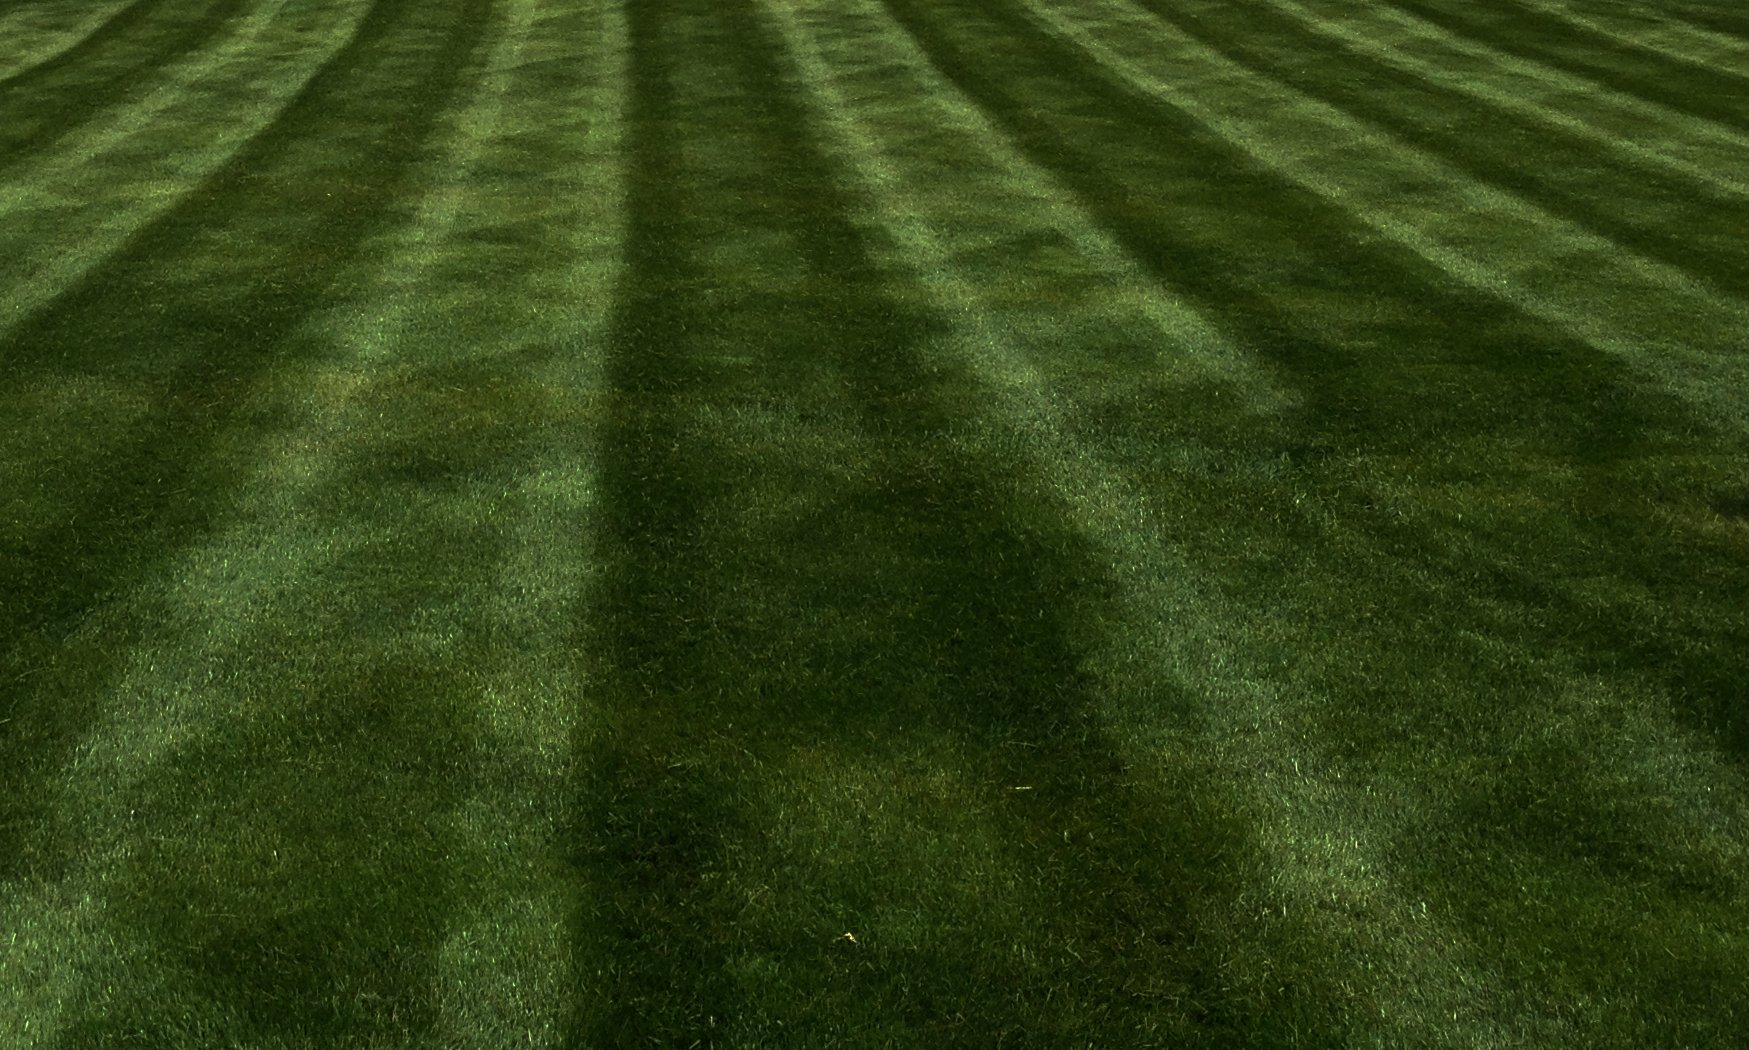 How To Make Your Lawn Green Naturally